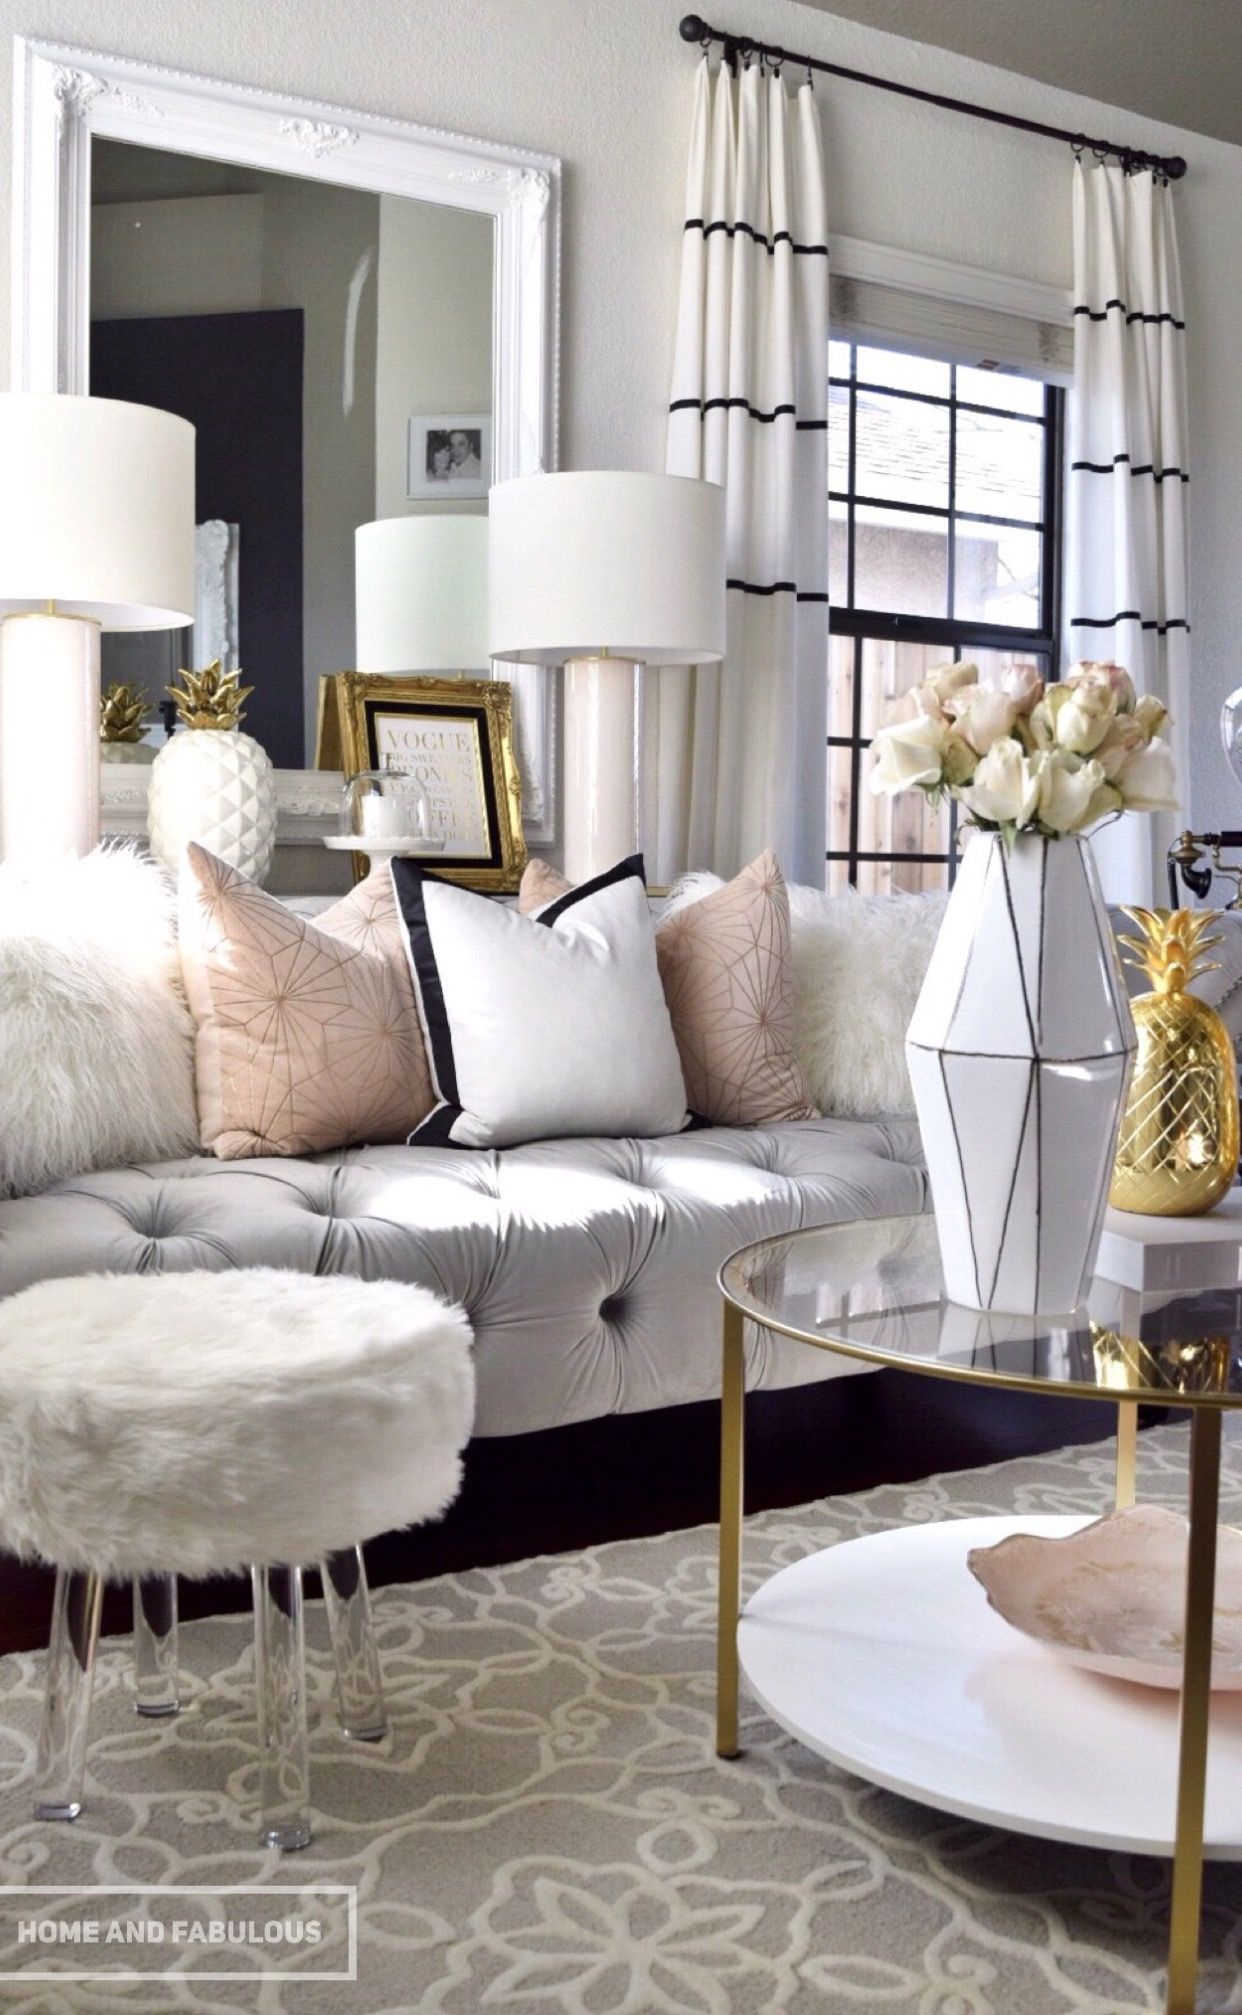 Decorating Ideas For Bedrooms Pinterest How One Couch Inspired A Living Room Transformation